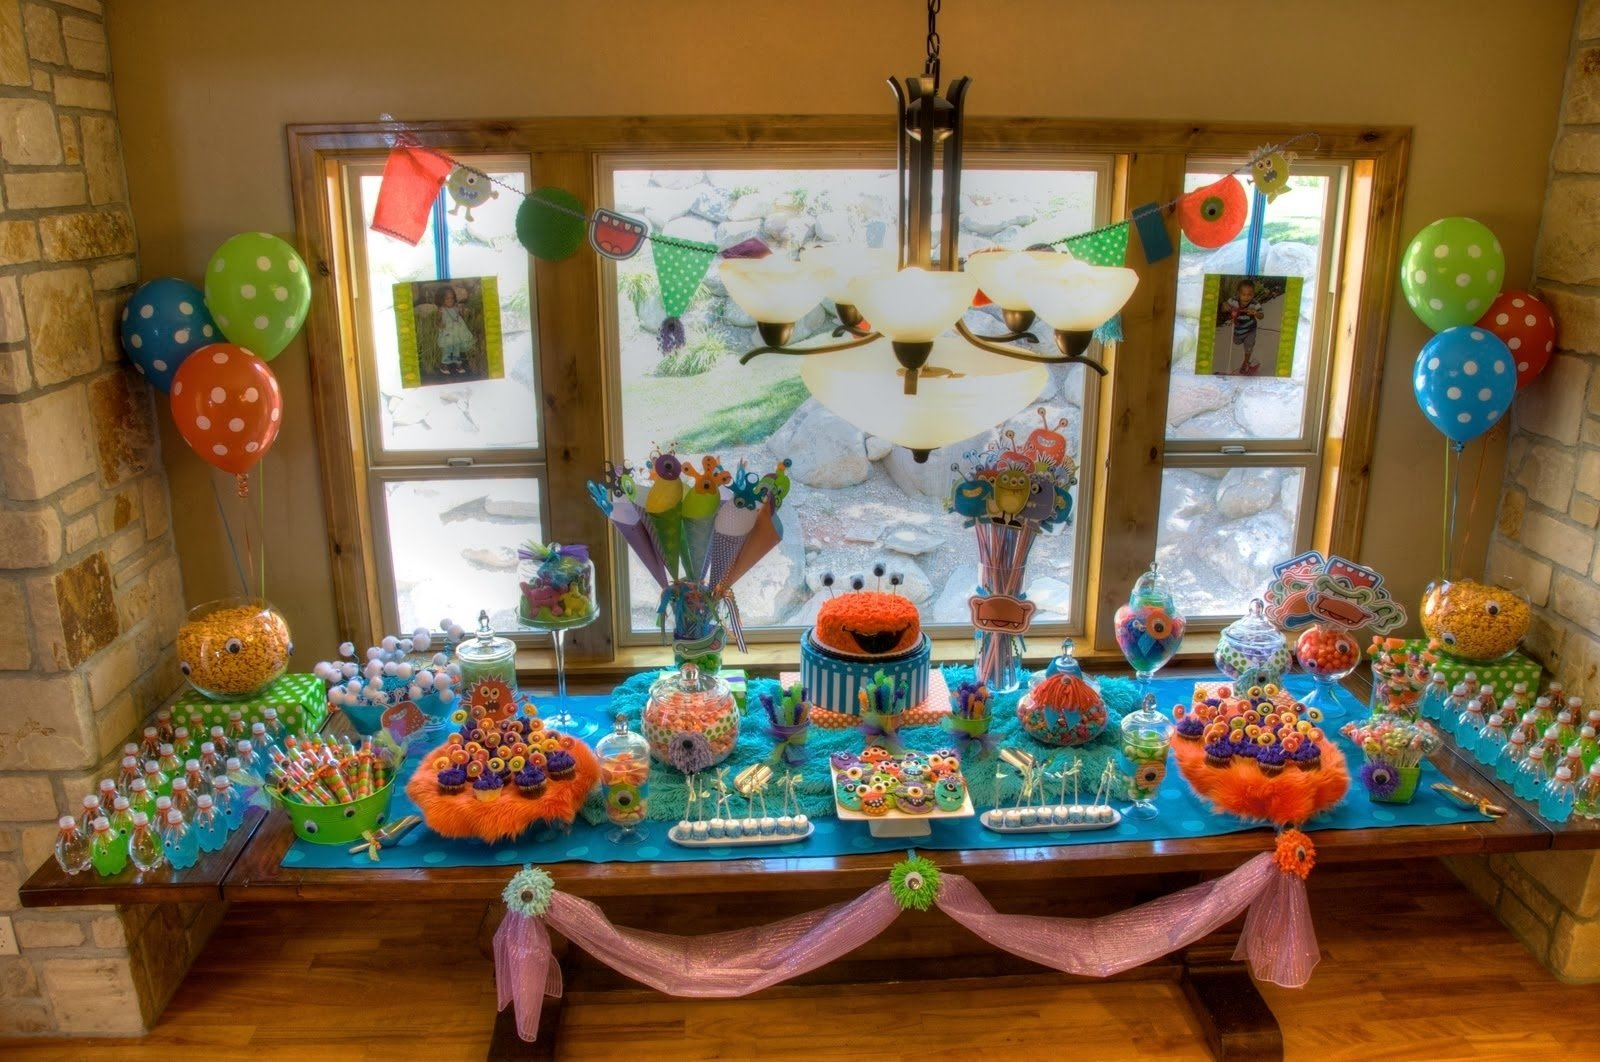 10 Unique 6 Year Old Boy Birthday Party Ideas momfessionals party planning 1